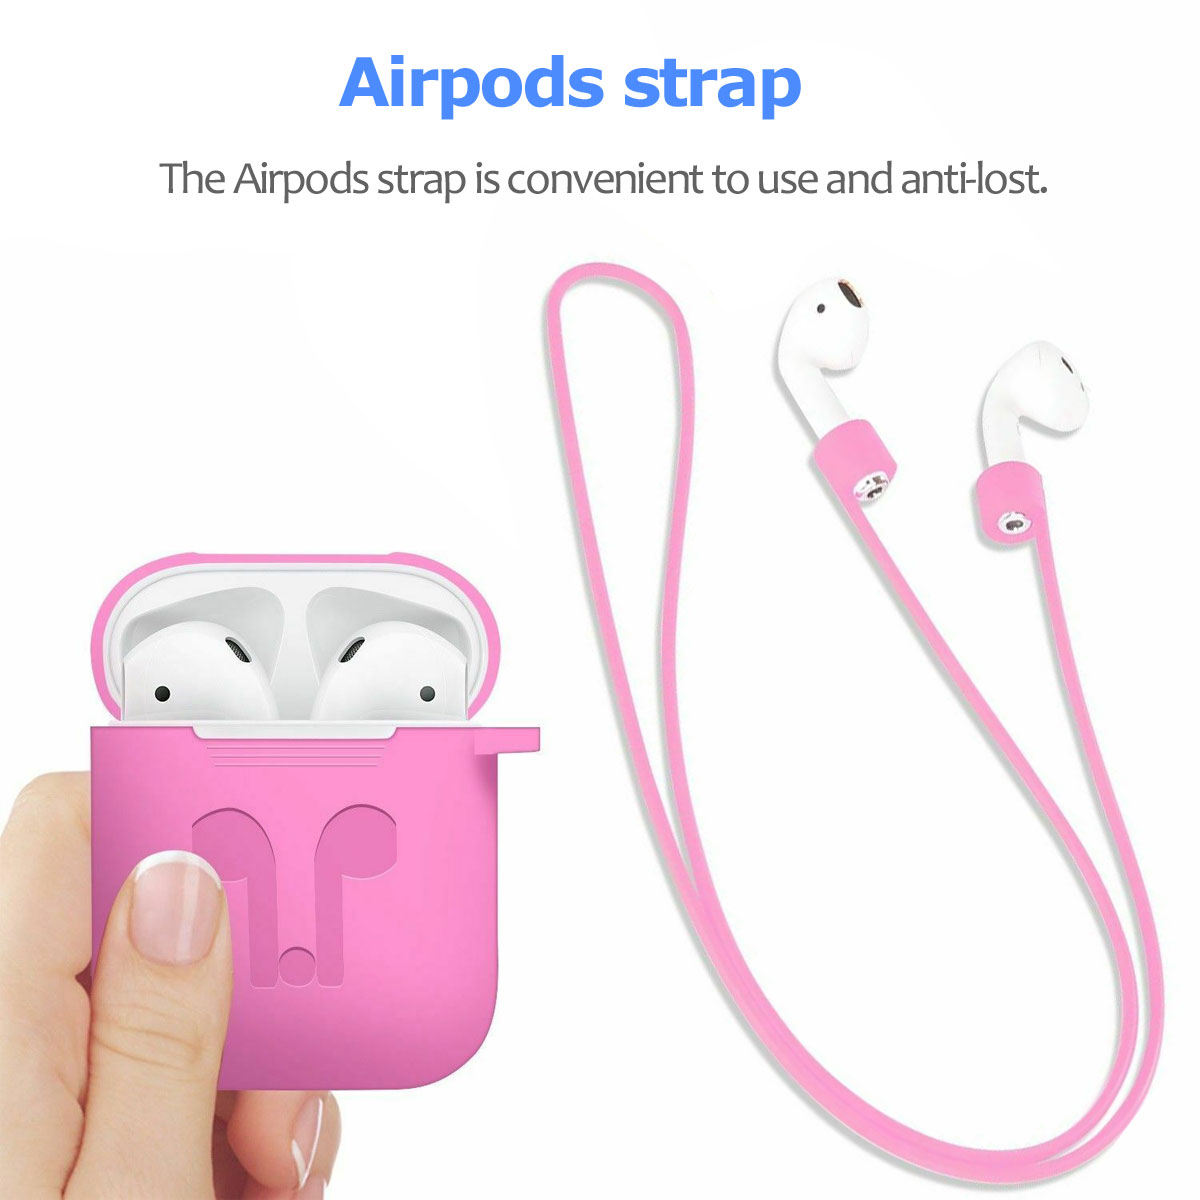 Silicone-Ruggged-Case-Cover-Earbuds-For-Apple-AirPods-2nd-Gen-Accessories-2019 thumbnail 52